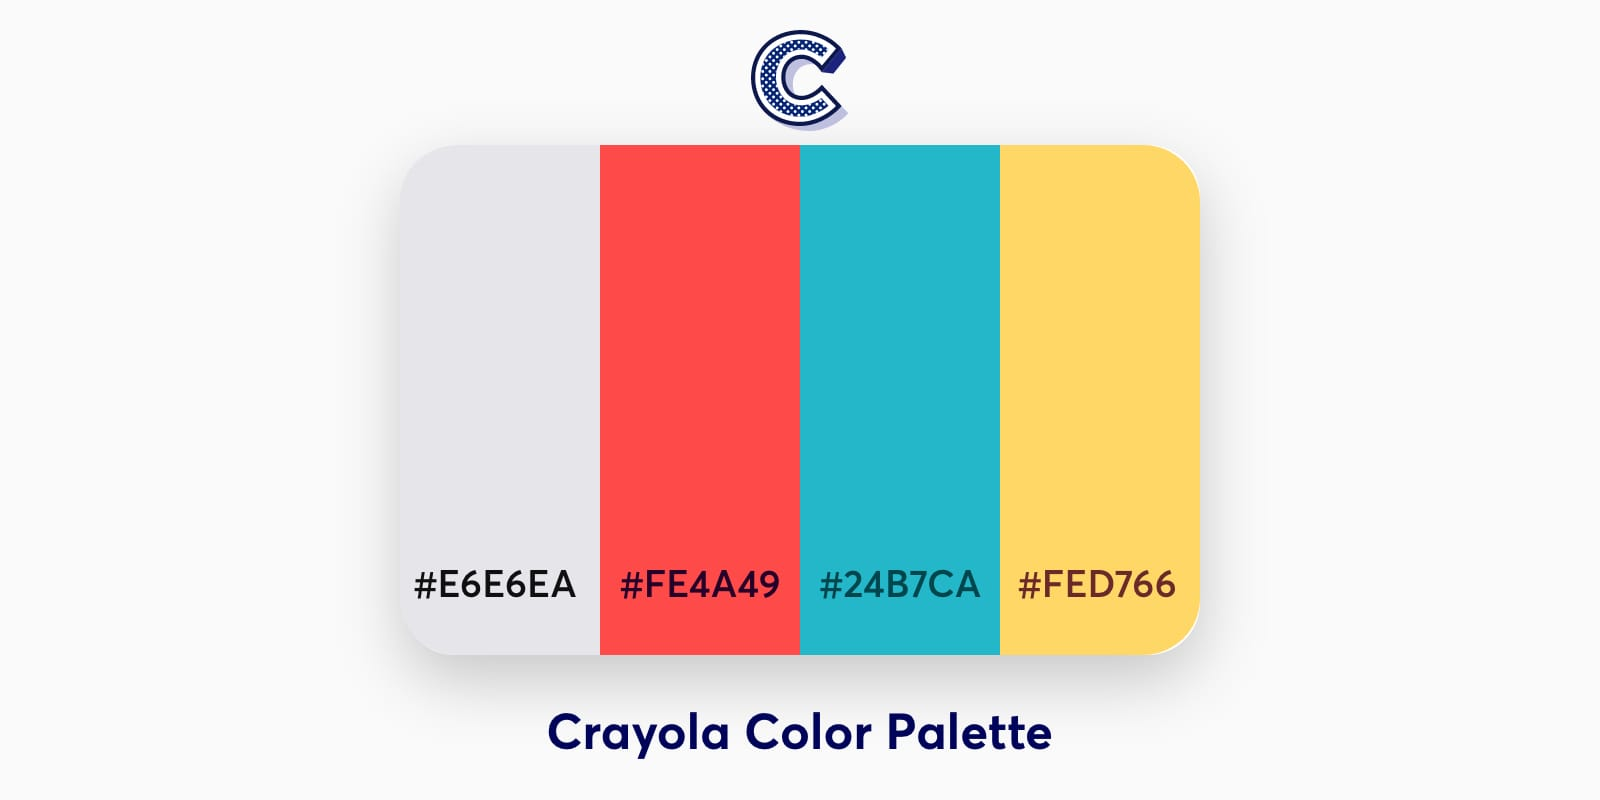 the featured image of crayola color palette